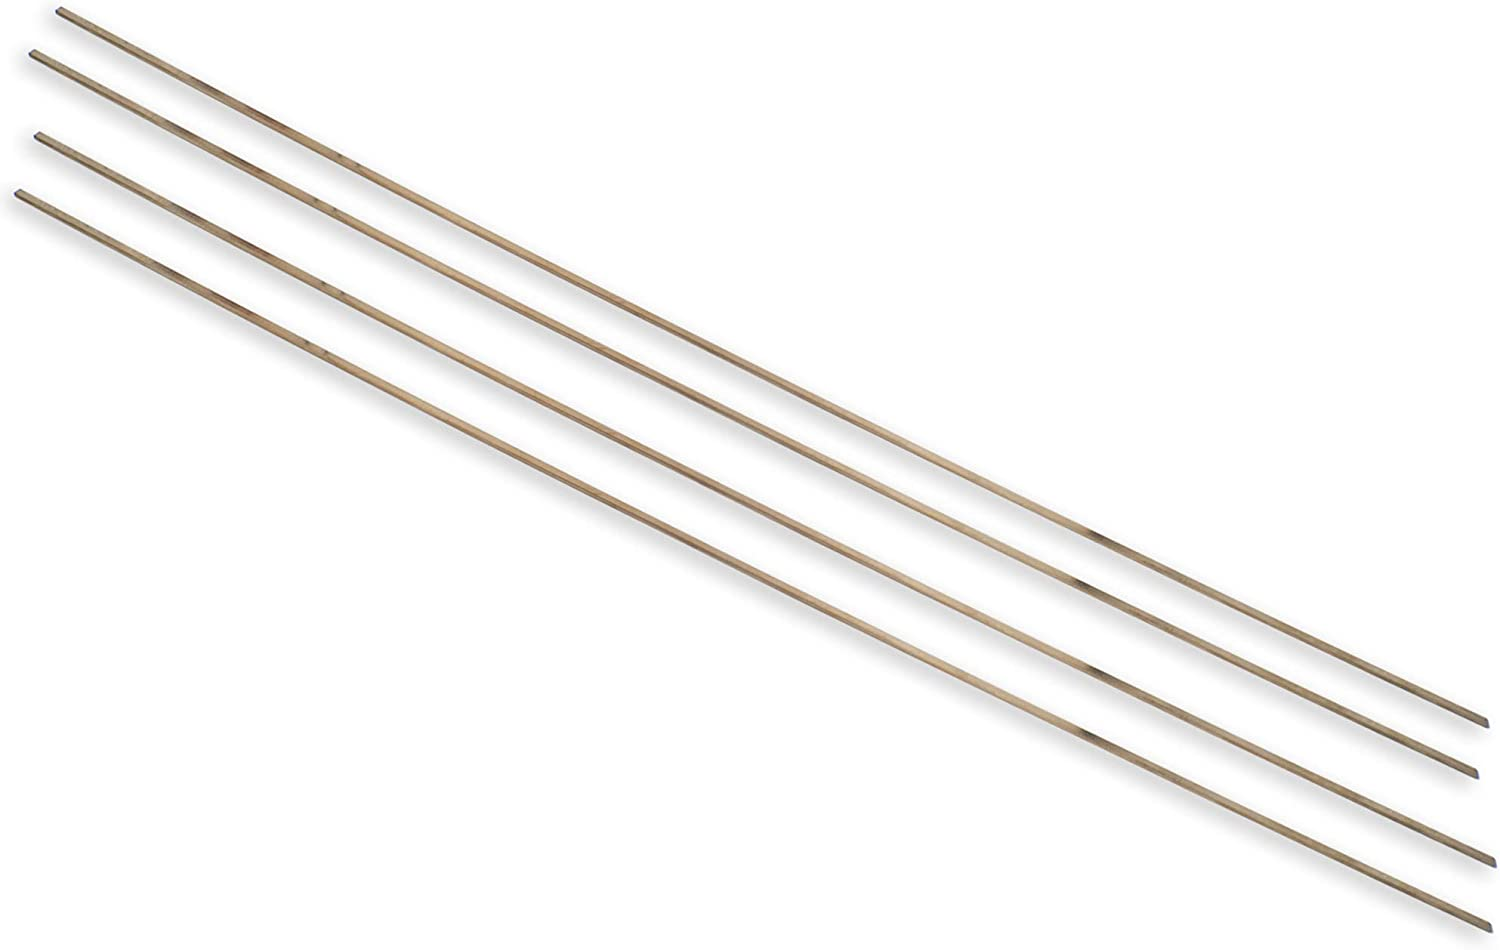 Brazetec s15 1.5 mm Brazing 15/% Silver Refrigeration and Air Conditioning